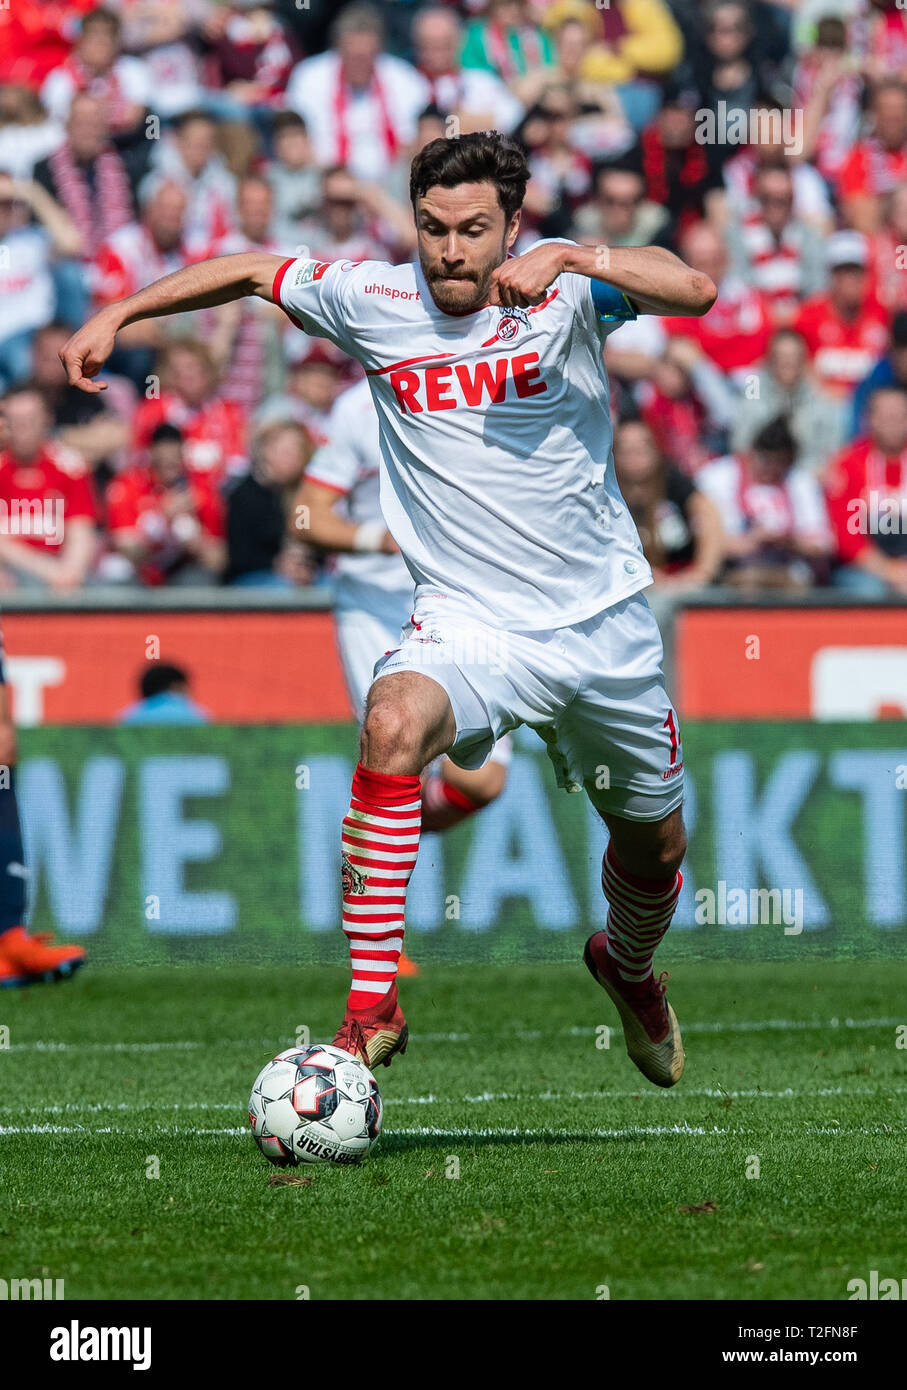 31 March 2019, North Rhine-Westphalia, Köln: Soccer: 2nd Bundesliga, 1st FC Cologne - Holstein Kiel, 27th matchday in the Rhein-Energie-Stadion. Cologne's Jonas Hector on the ball. Photo: Guido Kirchner/dpa - IMPORTANT NOTE: In accordance with the requirements of the DFL Deutsche Fußball Liga or the DFB Deutscher Fußball-Bund, it is prohibited to use or have used photographs taken in the stadium and/or the match in the form of sequence images and/or video-like photo sequences. Stock Photo